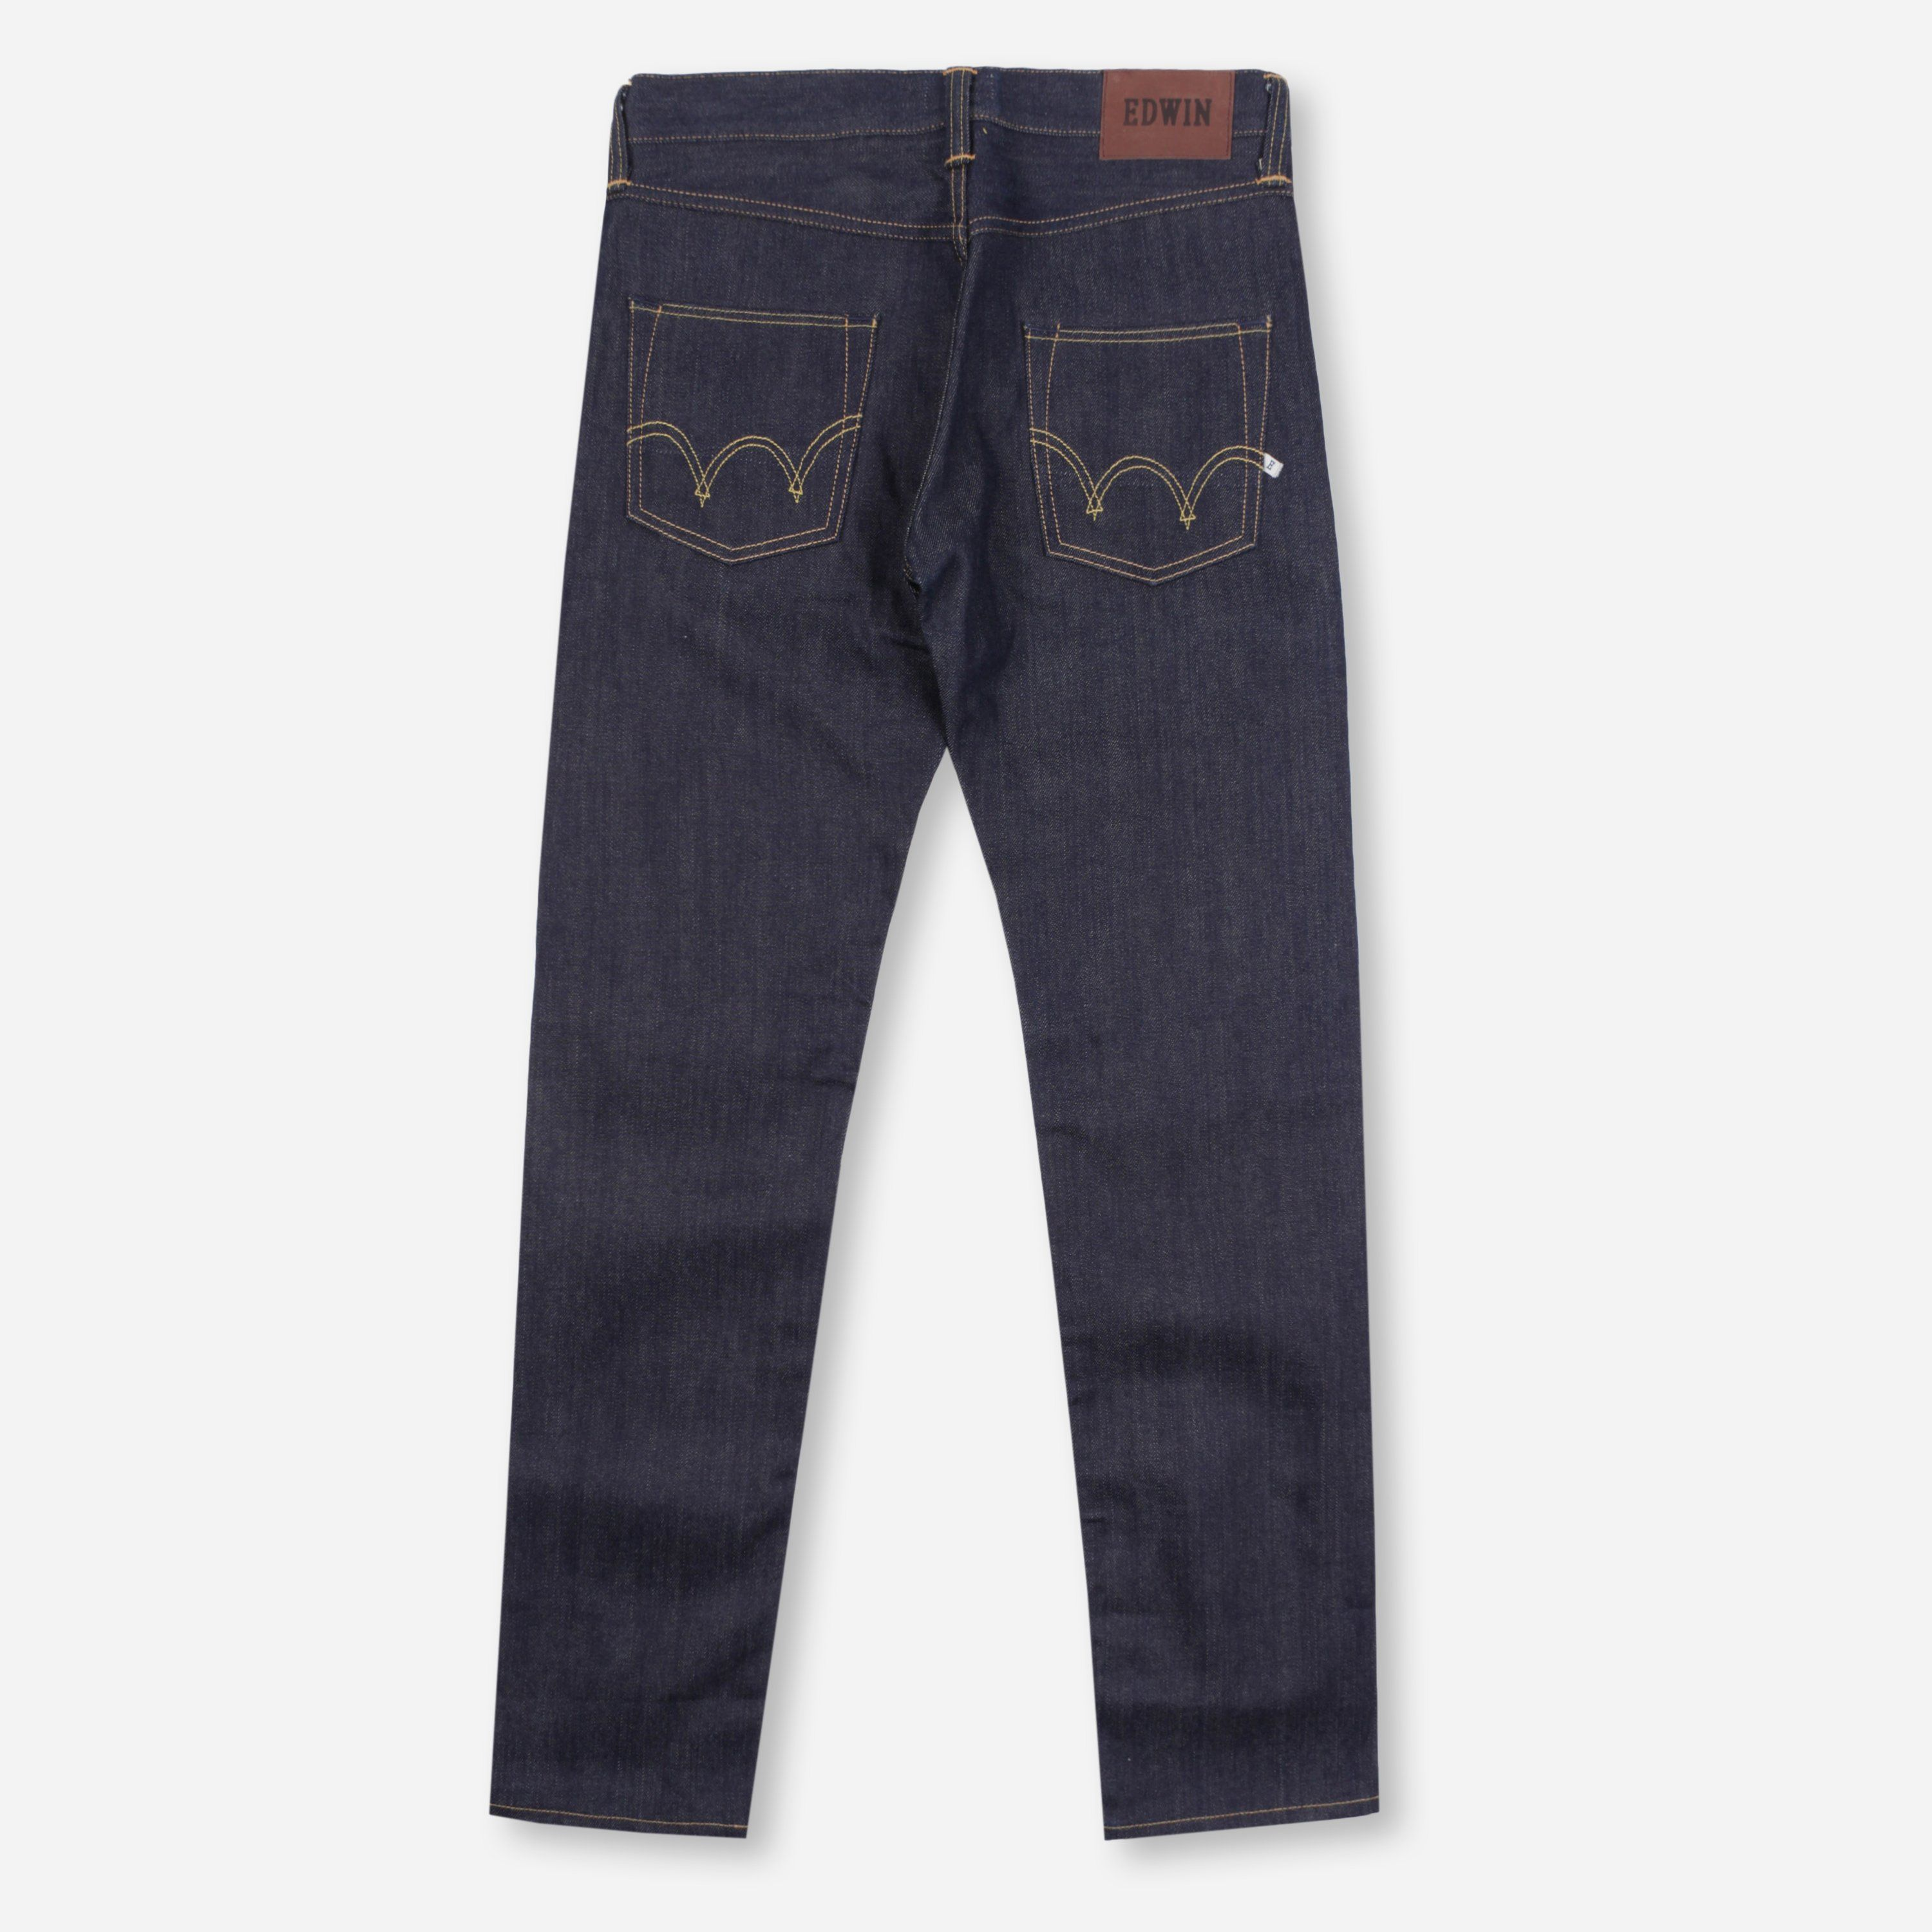 Edwin ED-55 Relaxed 63 Rainbow Selvage 12.8oz Unwashed